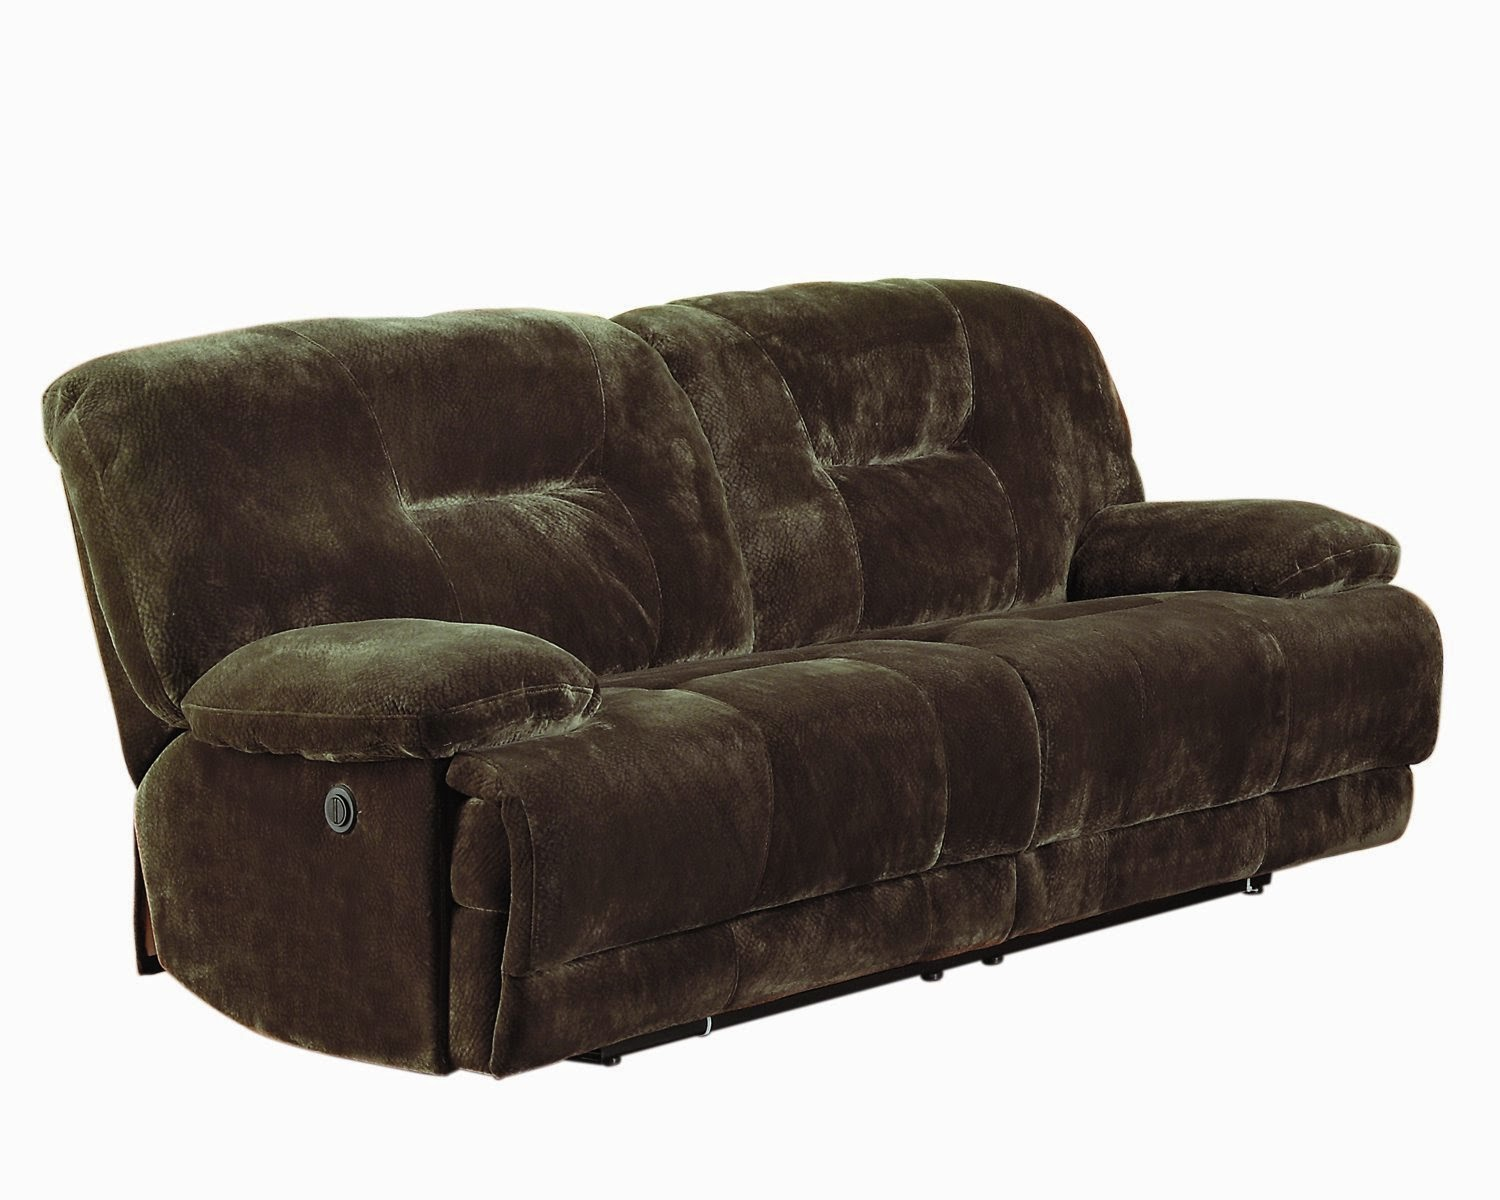 Top Seller Reclining And Recliner Sofa Loveseat Reclining Sofa Leather Power